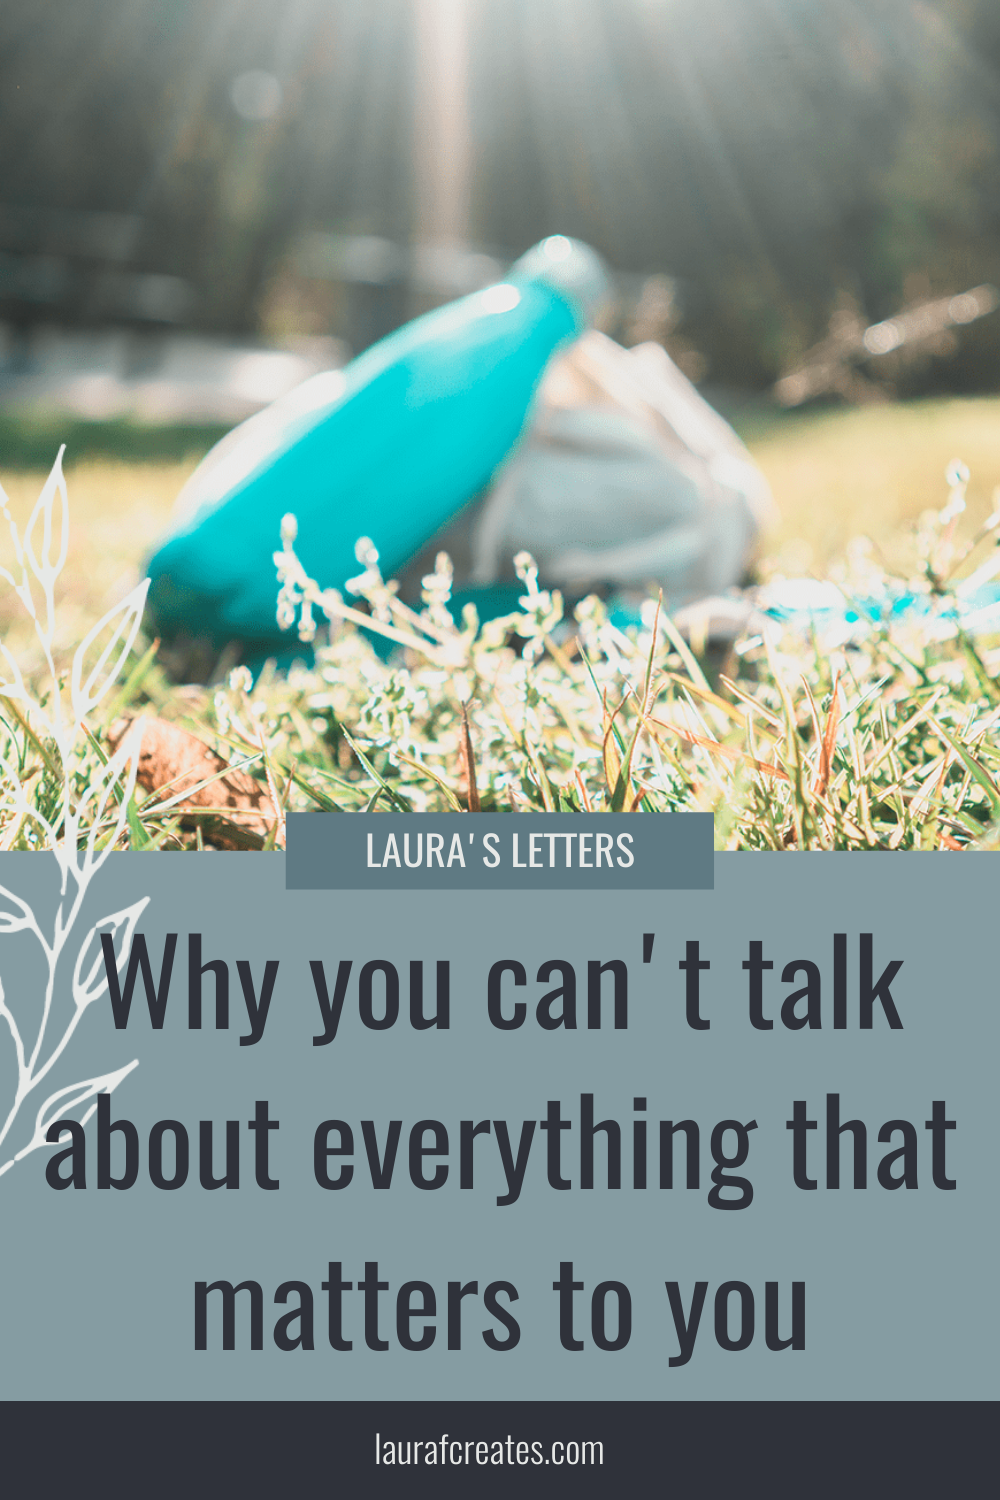 Why you can't talk about everything that matters to you By Laura F Creates. This blog post includes tips for building your website, website design tips, business growth tips & branding tips. #marketing #websitedesign #website #branding